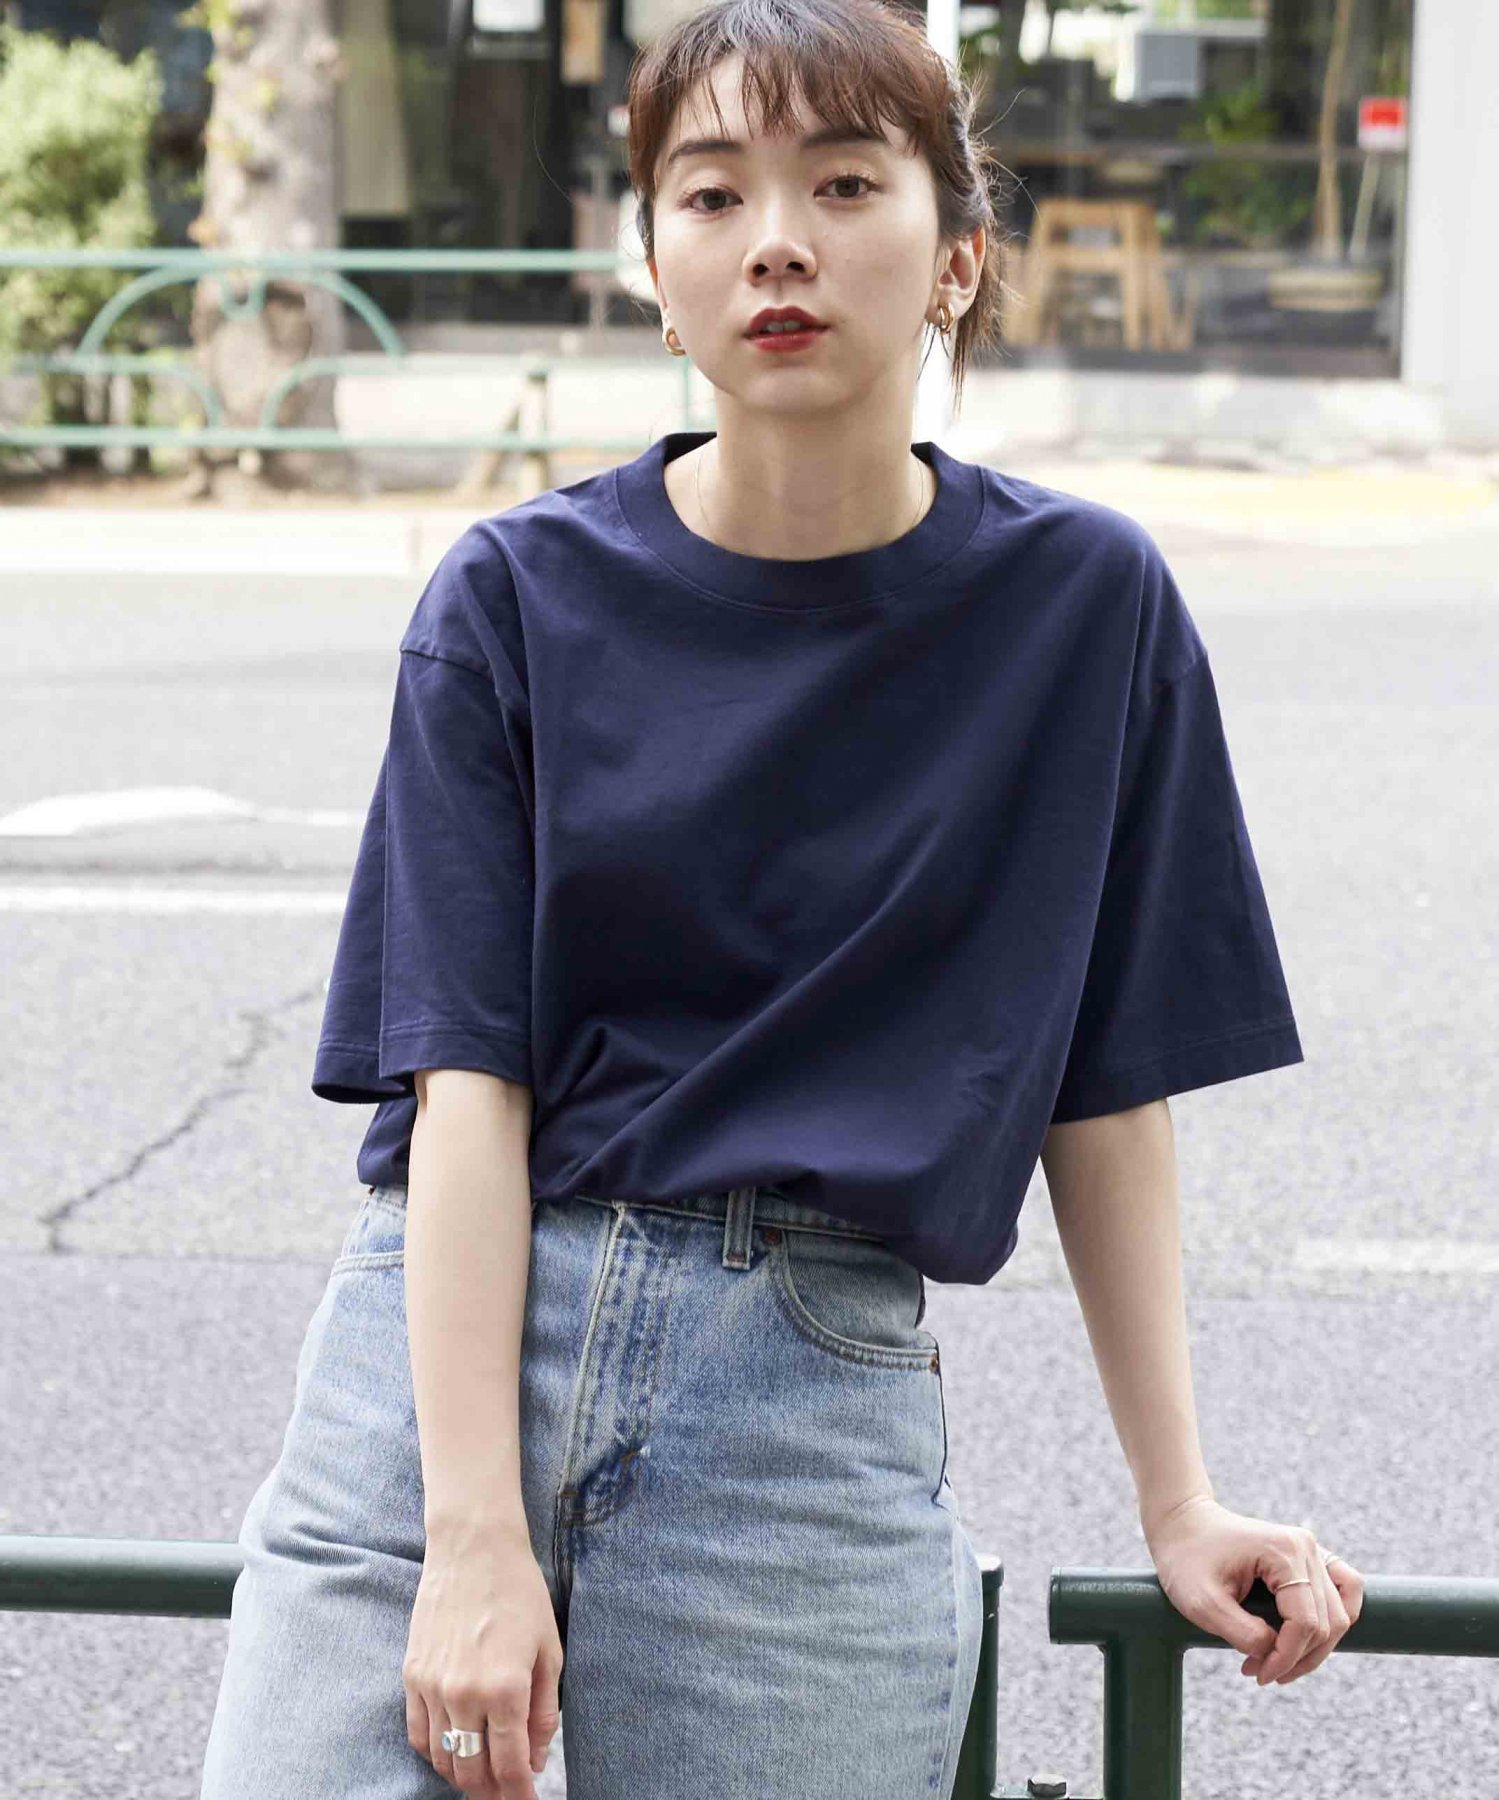 <img class='new_mark_img1' src='https://img.shop-pro.jp/img/new/icons15.gif' style='border:none;display:inline;margin:0px;padding:0px;width:auto;' />【REBIRTH PROJECT】SOUL COTTON T-shirt  NVY